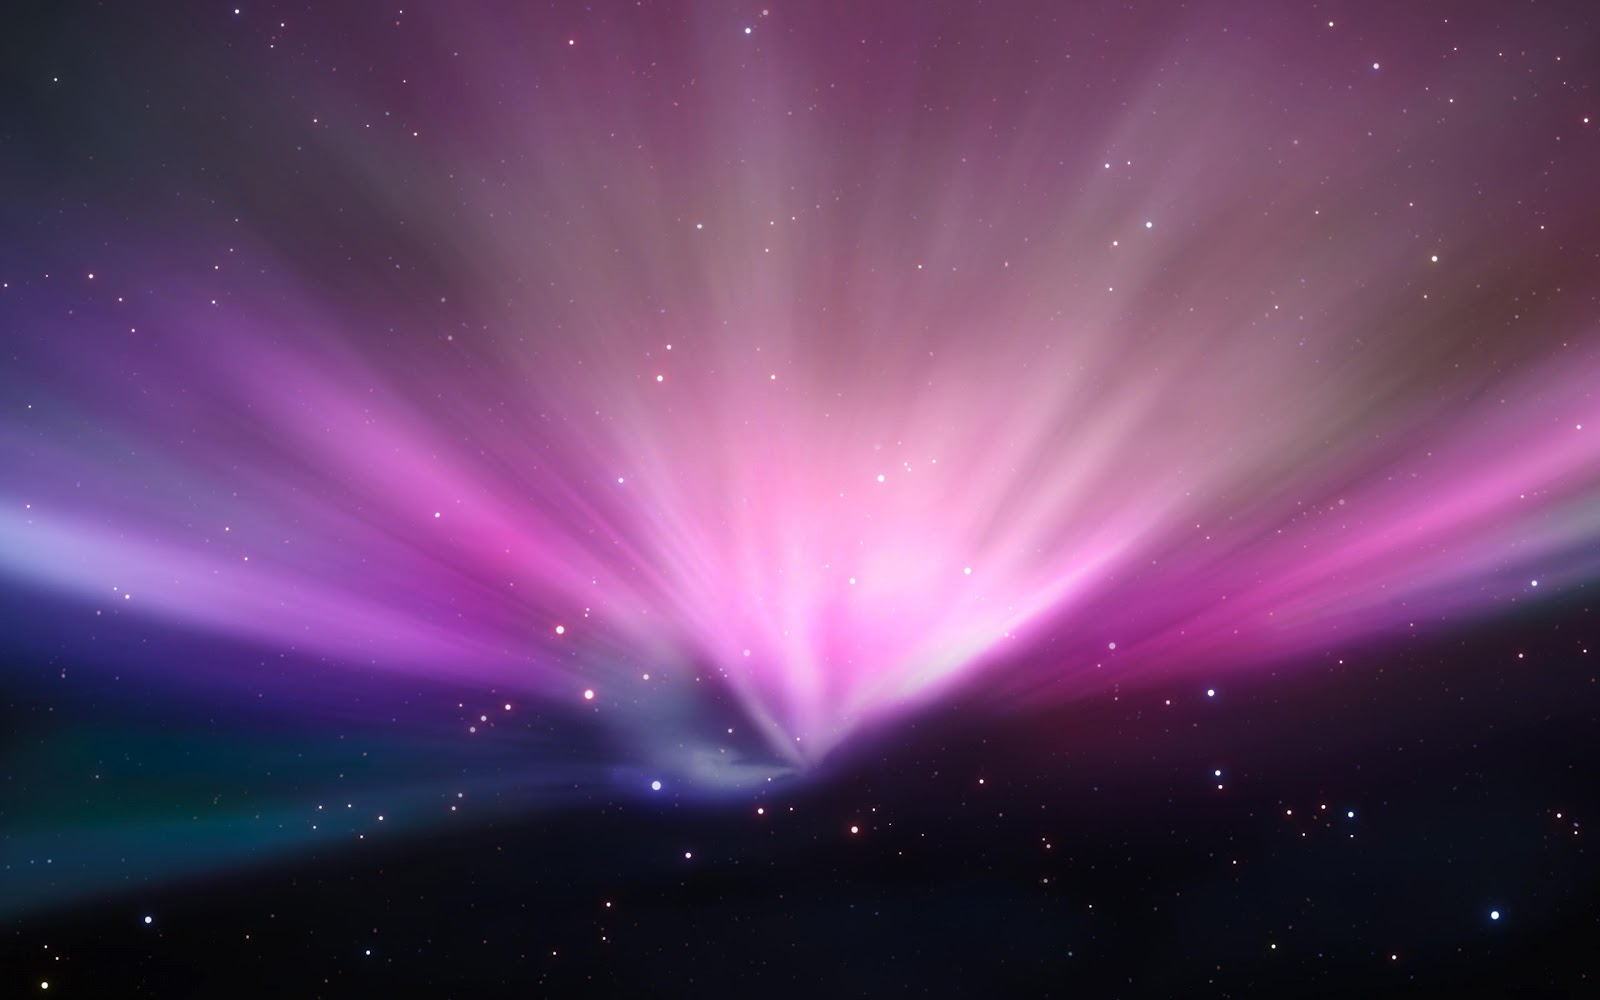 Aurora Wallpaper Mac | Free Download Wallpaper | DaWallpaperz